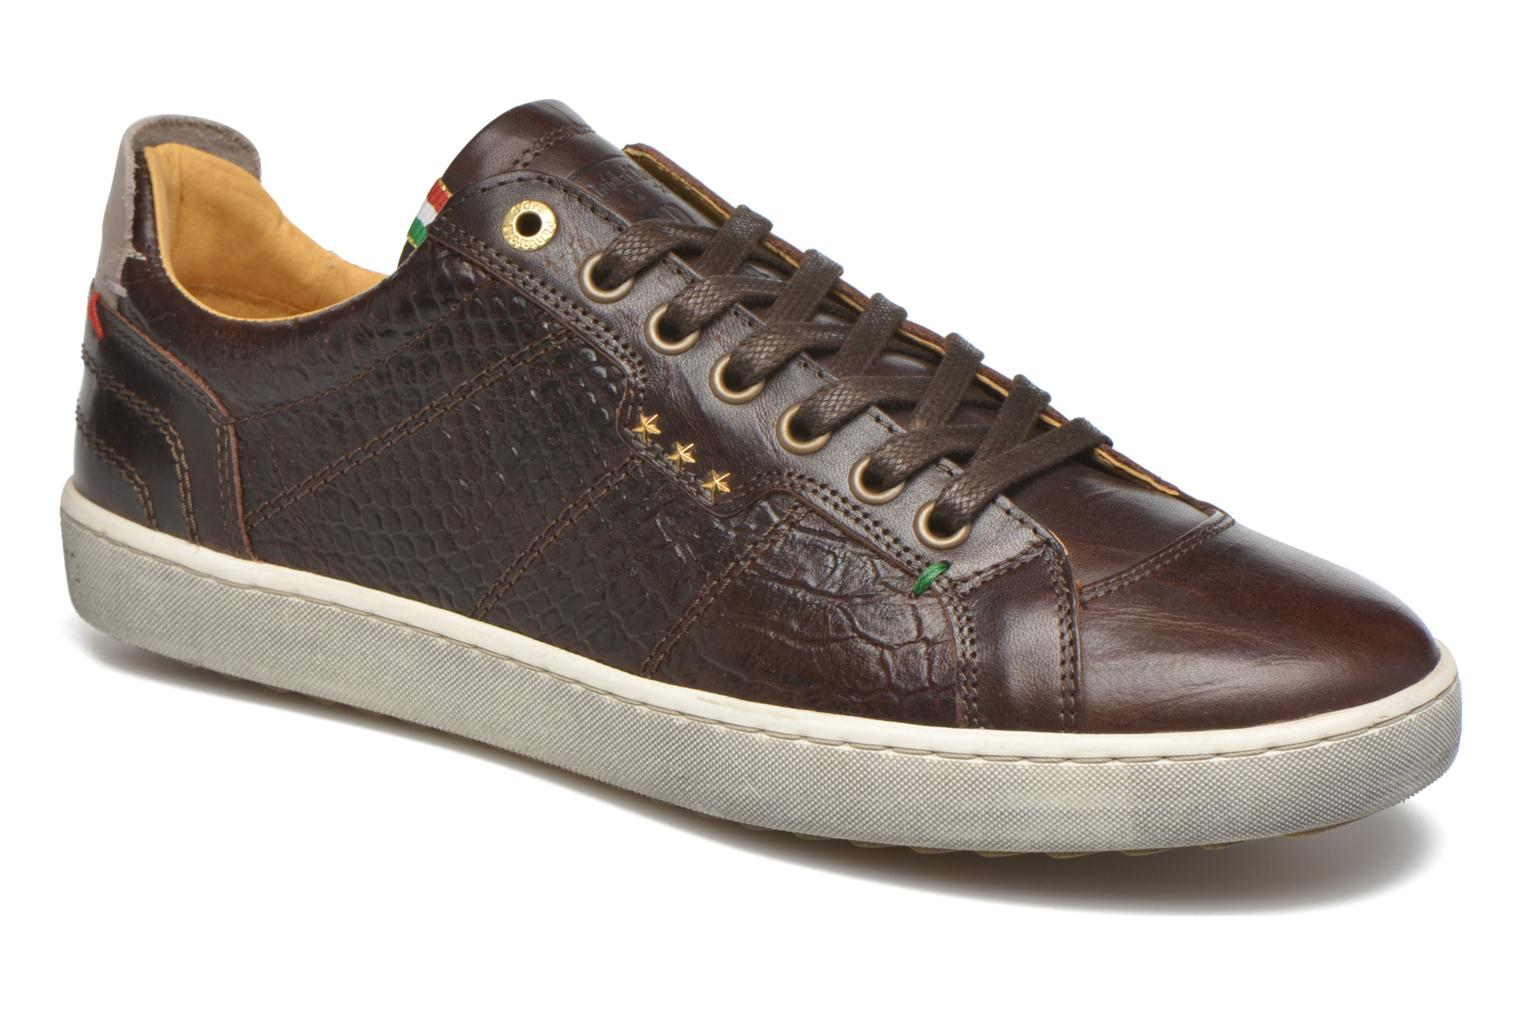 Sneakers Montefino Croco Low Men by Pantofola d'Oro